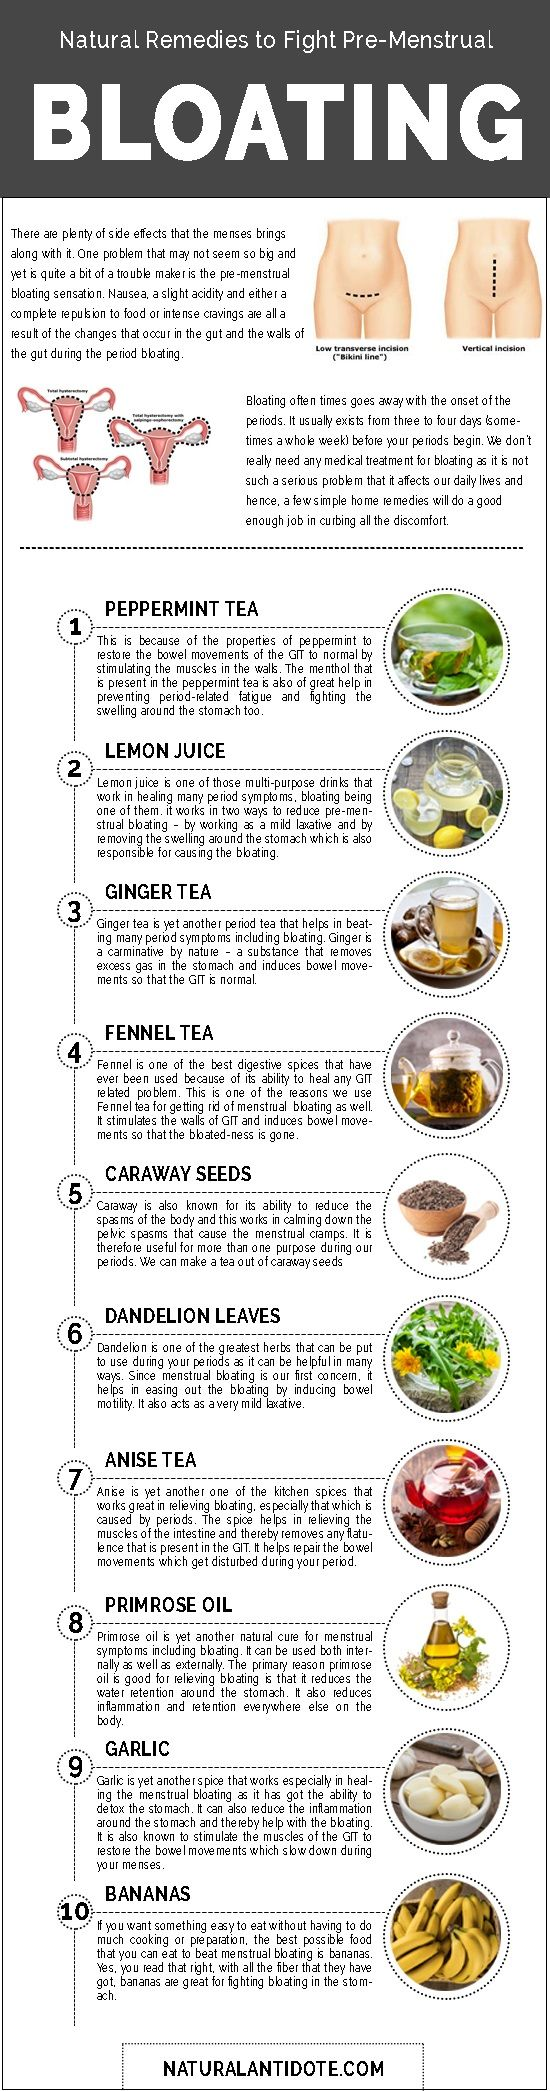 10 Easy-to-Make Natural Remedies to fight Pre-menstrual Bloating